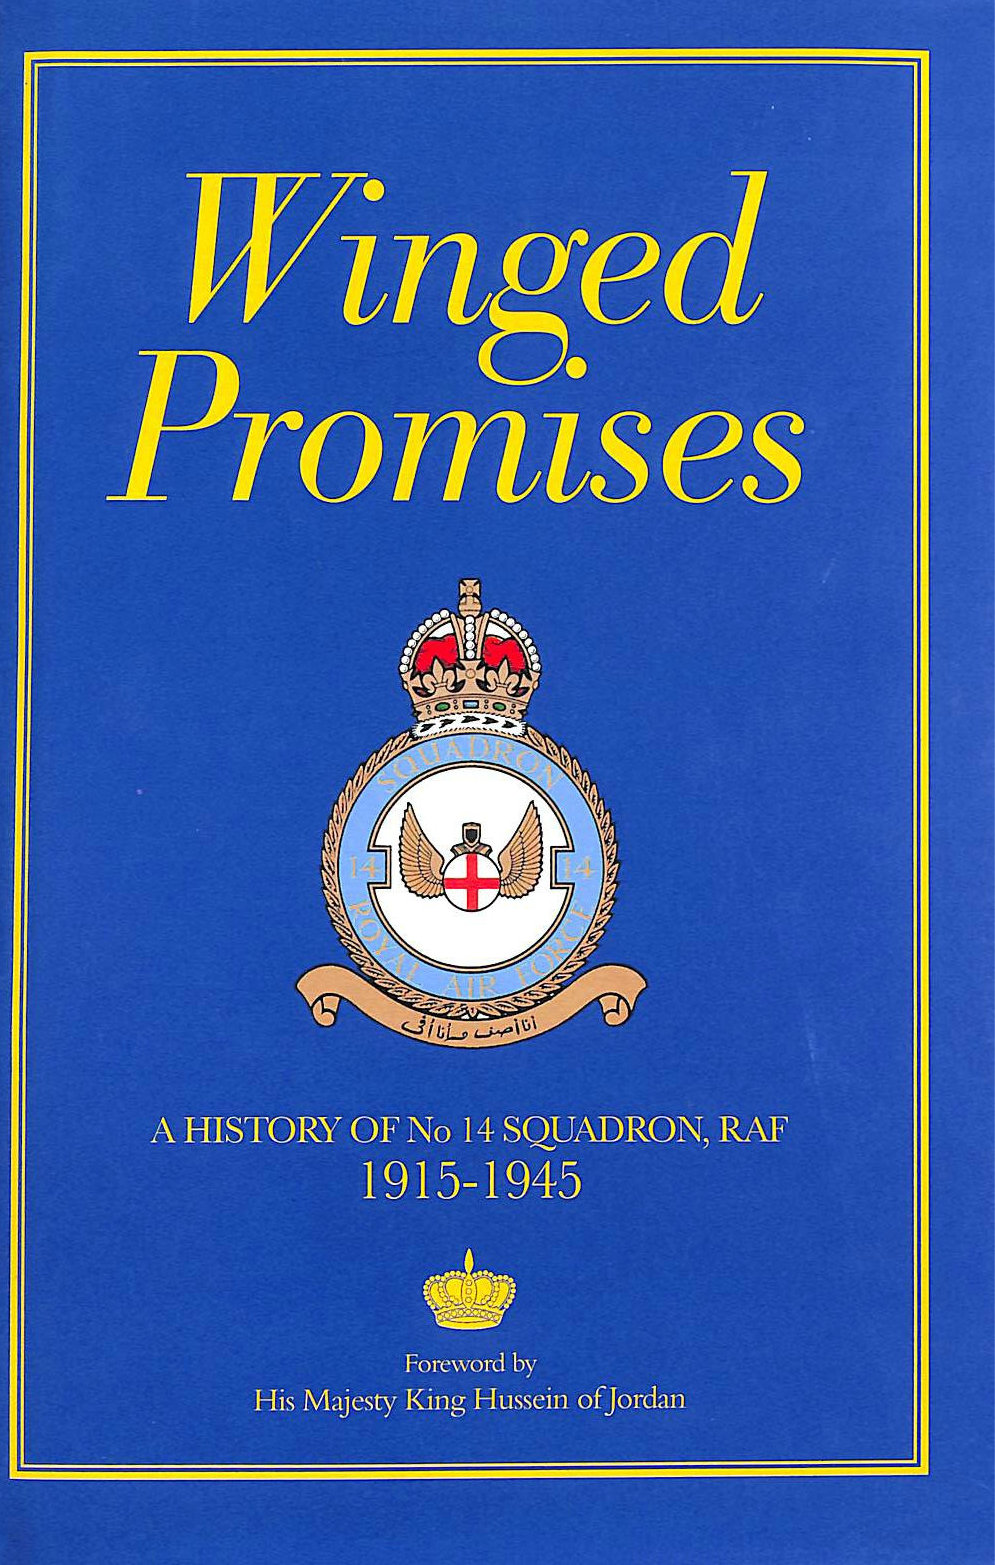 Image for Winged Promises: History of No.14 Squadron, RAF 1915-1945